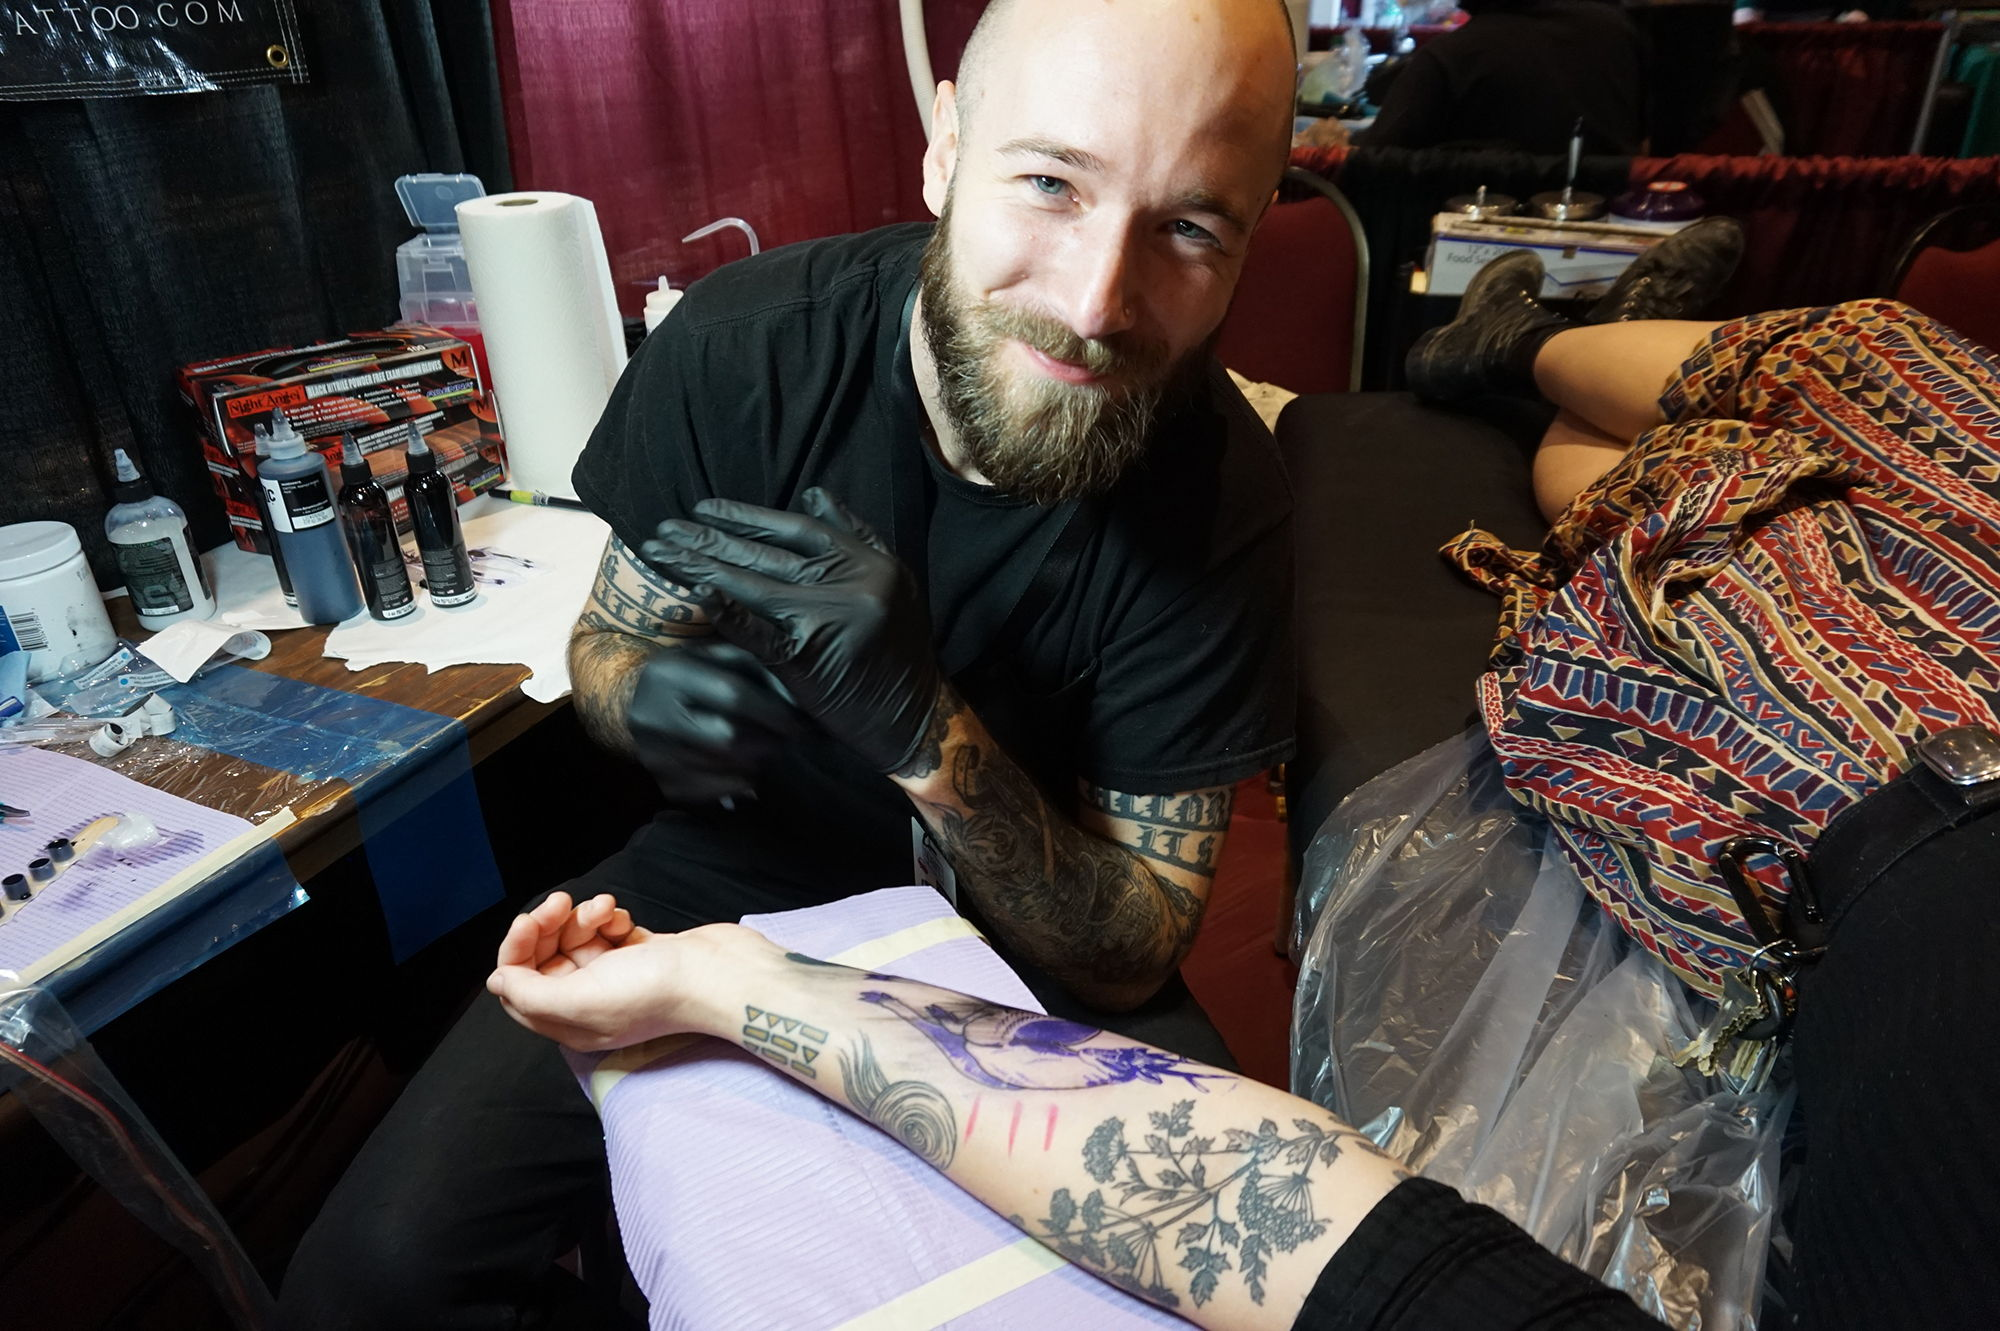 Above: Oakland-based tattooer Matt Leibowitz from Old Crow studio.